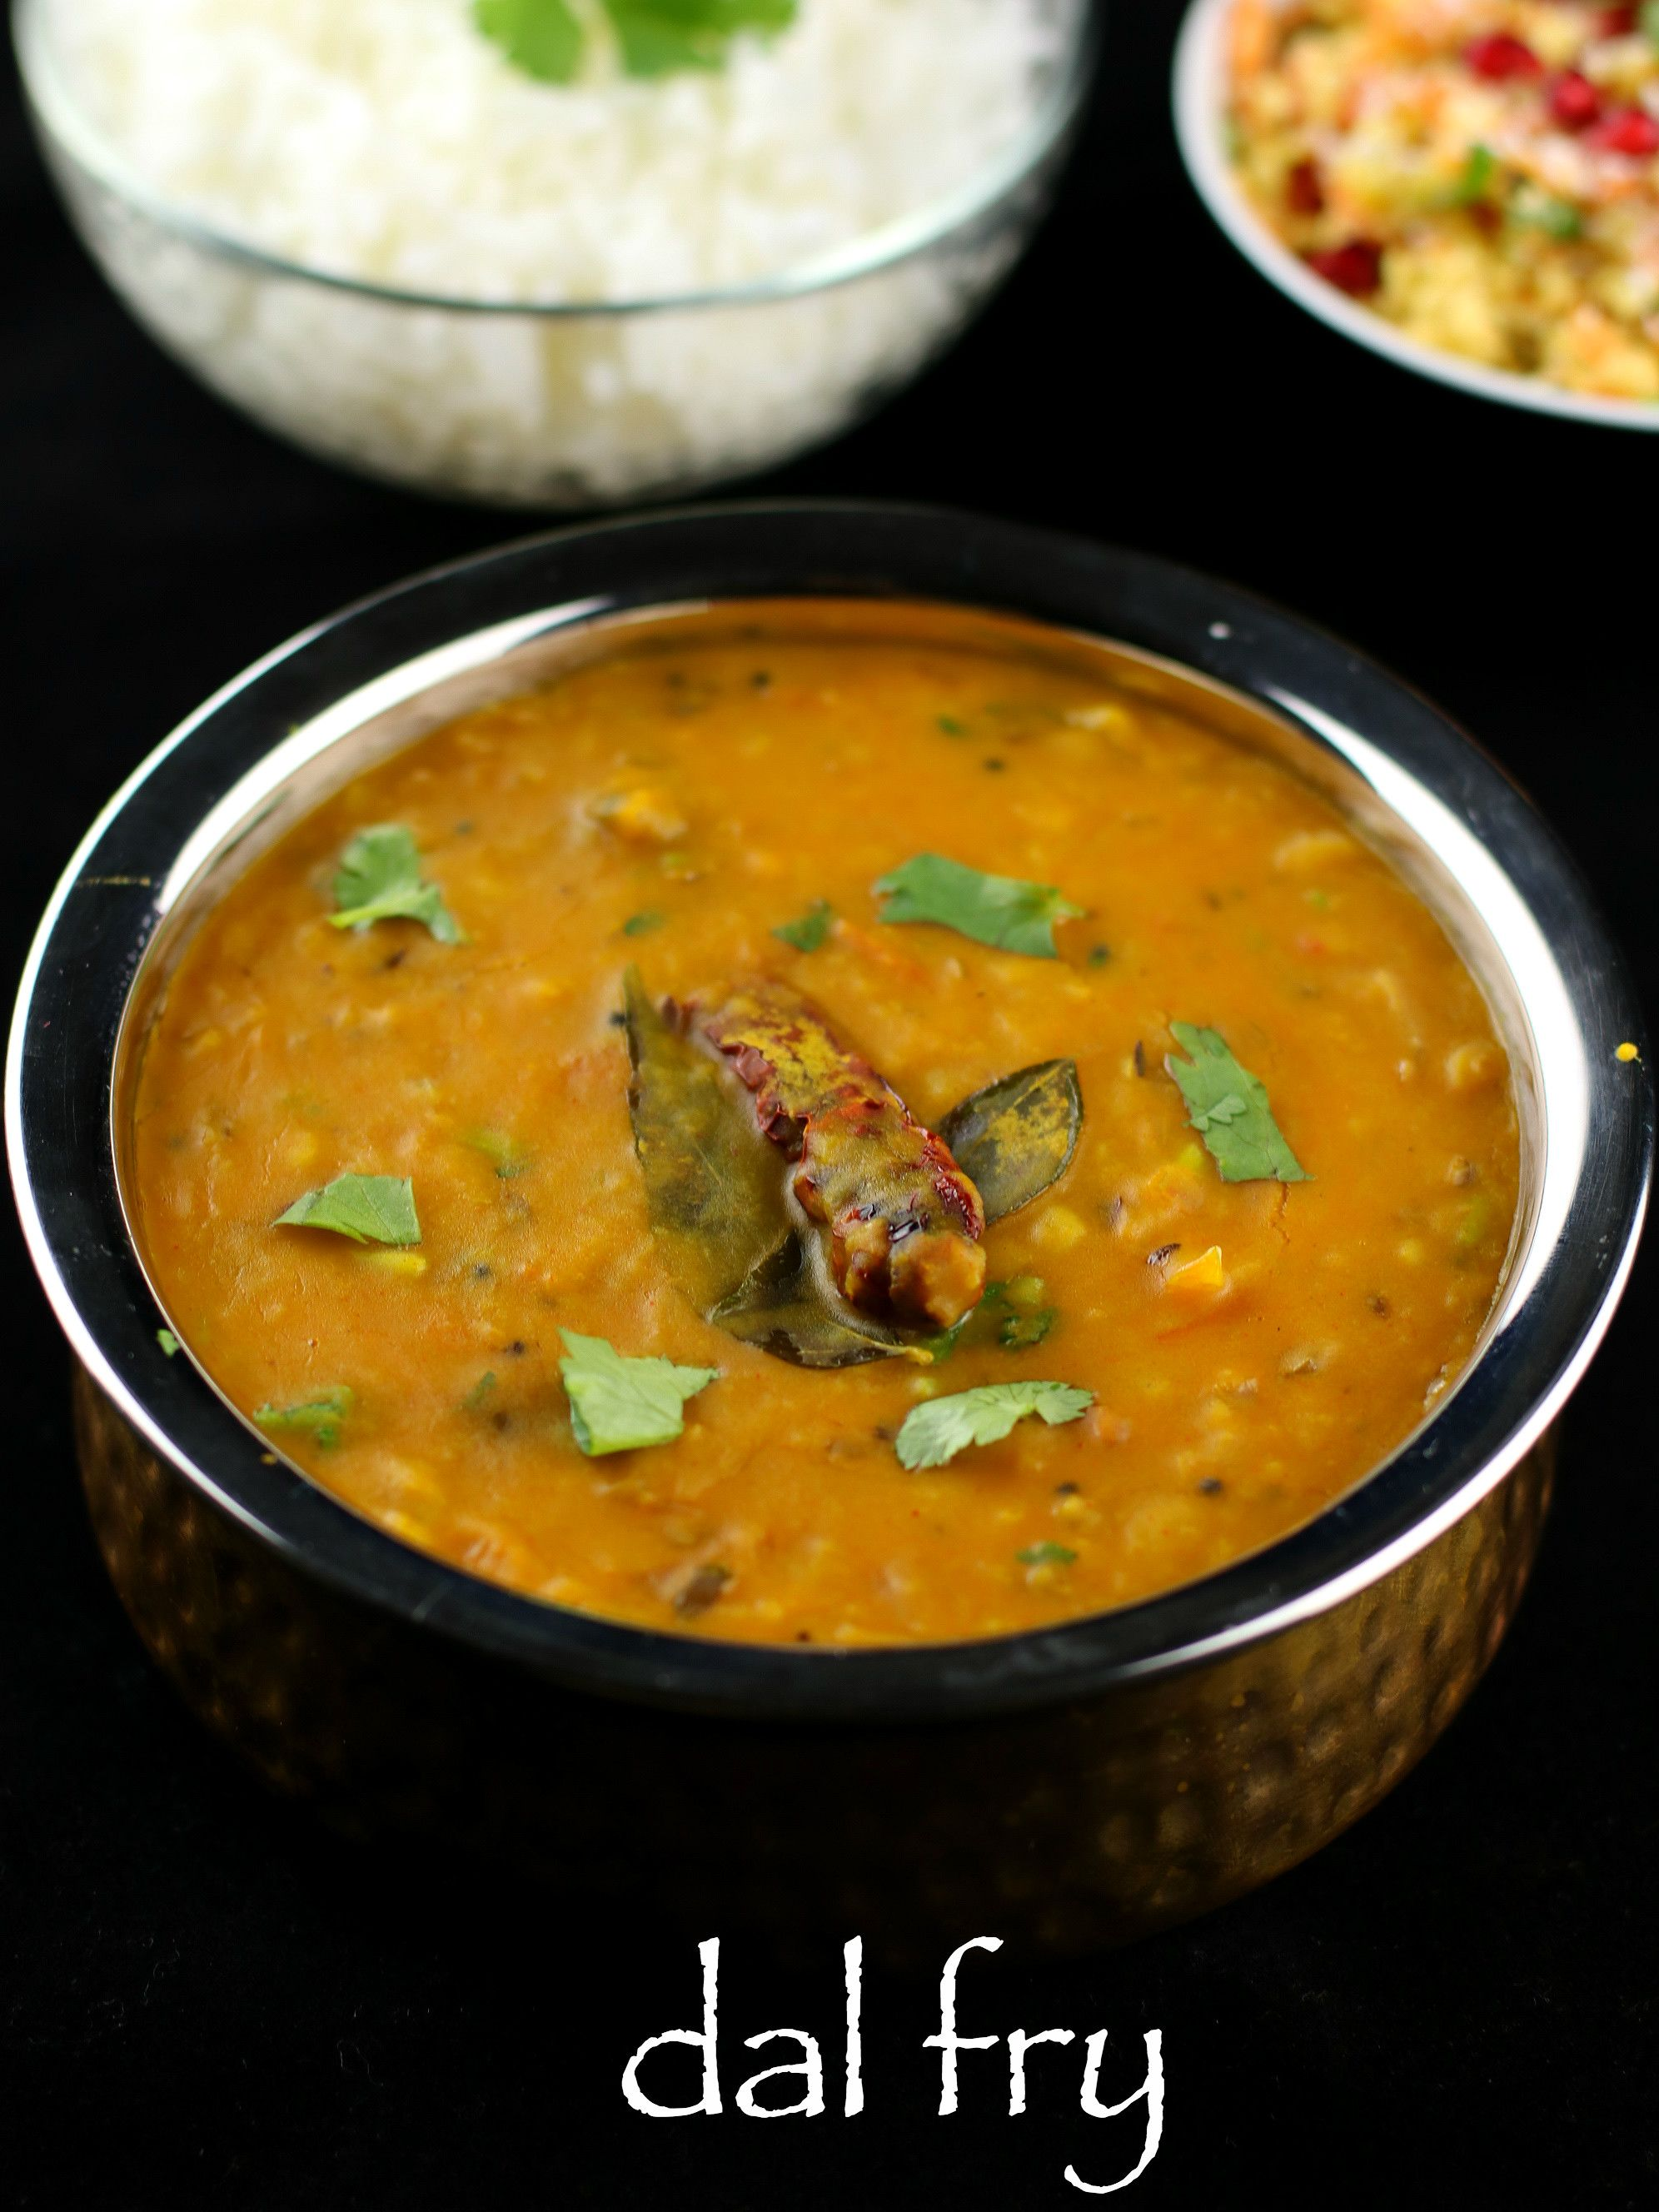 Dal fry recipe restaurant style dal fry recipe with step by step dal recipes collection of dal recipes indian dal recipes with step by step photovideo recipes dal recipes are favorite curry for rice roti and chapathi forumfinder Choice Image